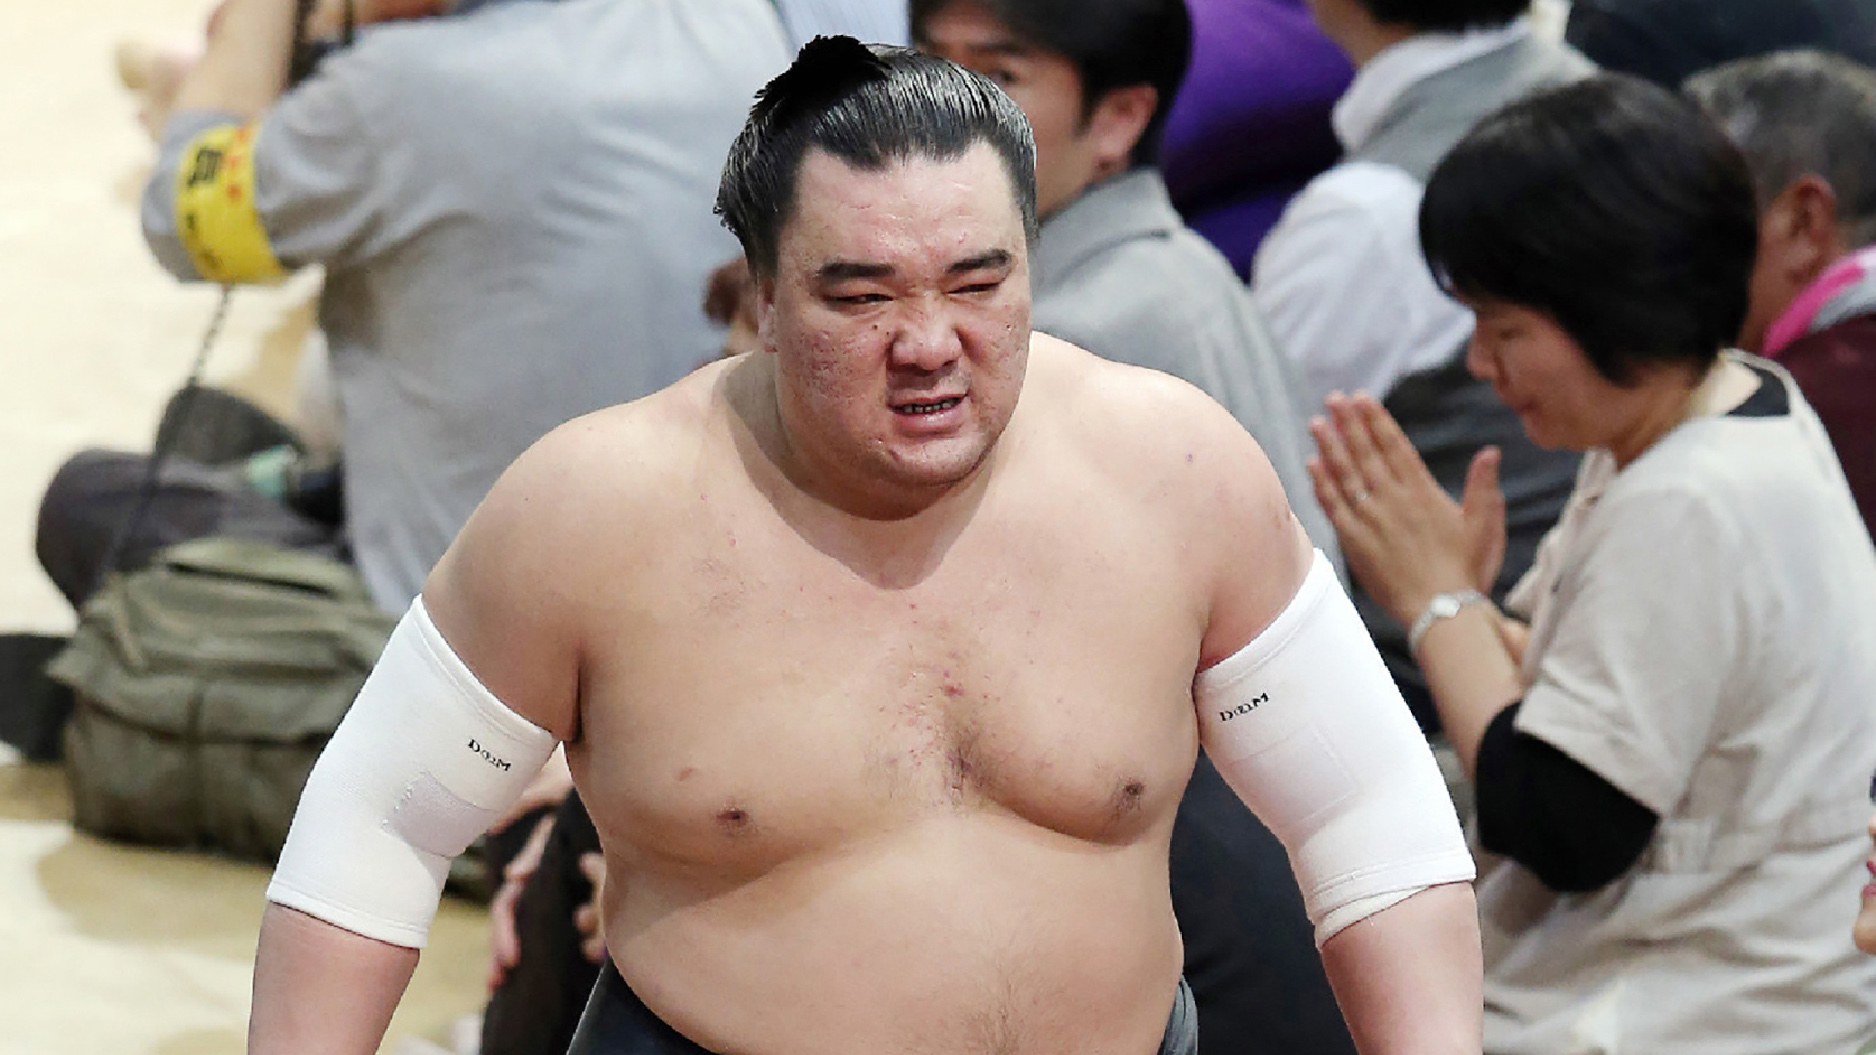 Sumo Wrestler Accused of Breaking Fellow Wrestler's Skull With Beer Bottle